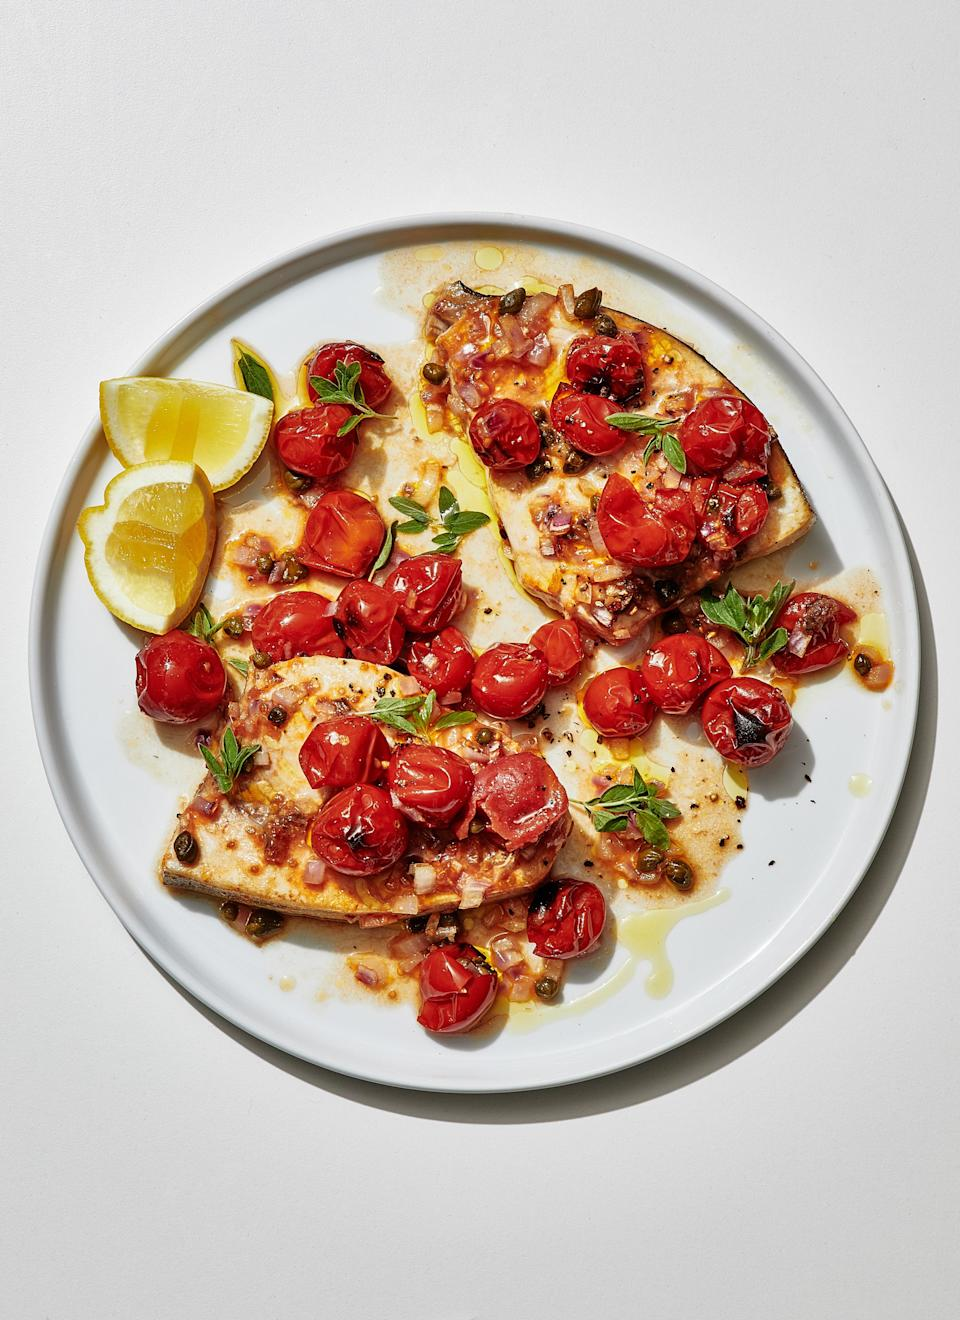 "Swordfish, with its meaty texture and strong (not in a bad way) flavor, can stand up to other robust seasonings like these. In its place, choose another firm-fleshed type, such as cod, halibut, or salmon. <a href=""https://www.bonappetit.com/recipe/swordfish-steaks-cherry-tomatoes-capers?mbid=synd_yahoo_rss"" rel=""nofollow noopener"" target=""_blank"" data-ylk=""slk:See recipe."" class=""link rapid-noclick-resp"">See recipe.</a>"